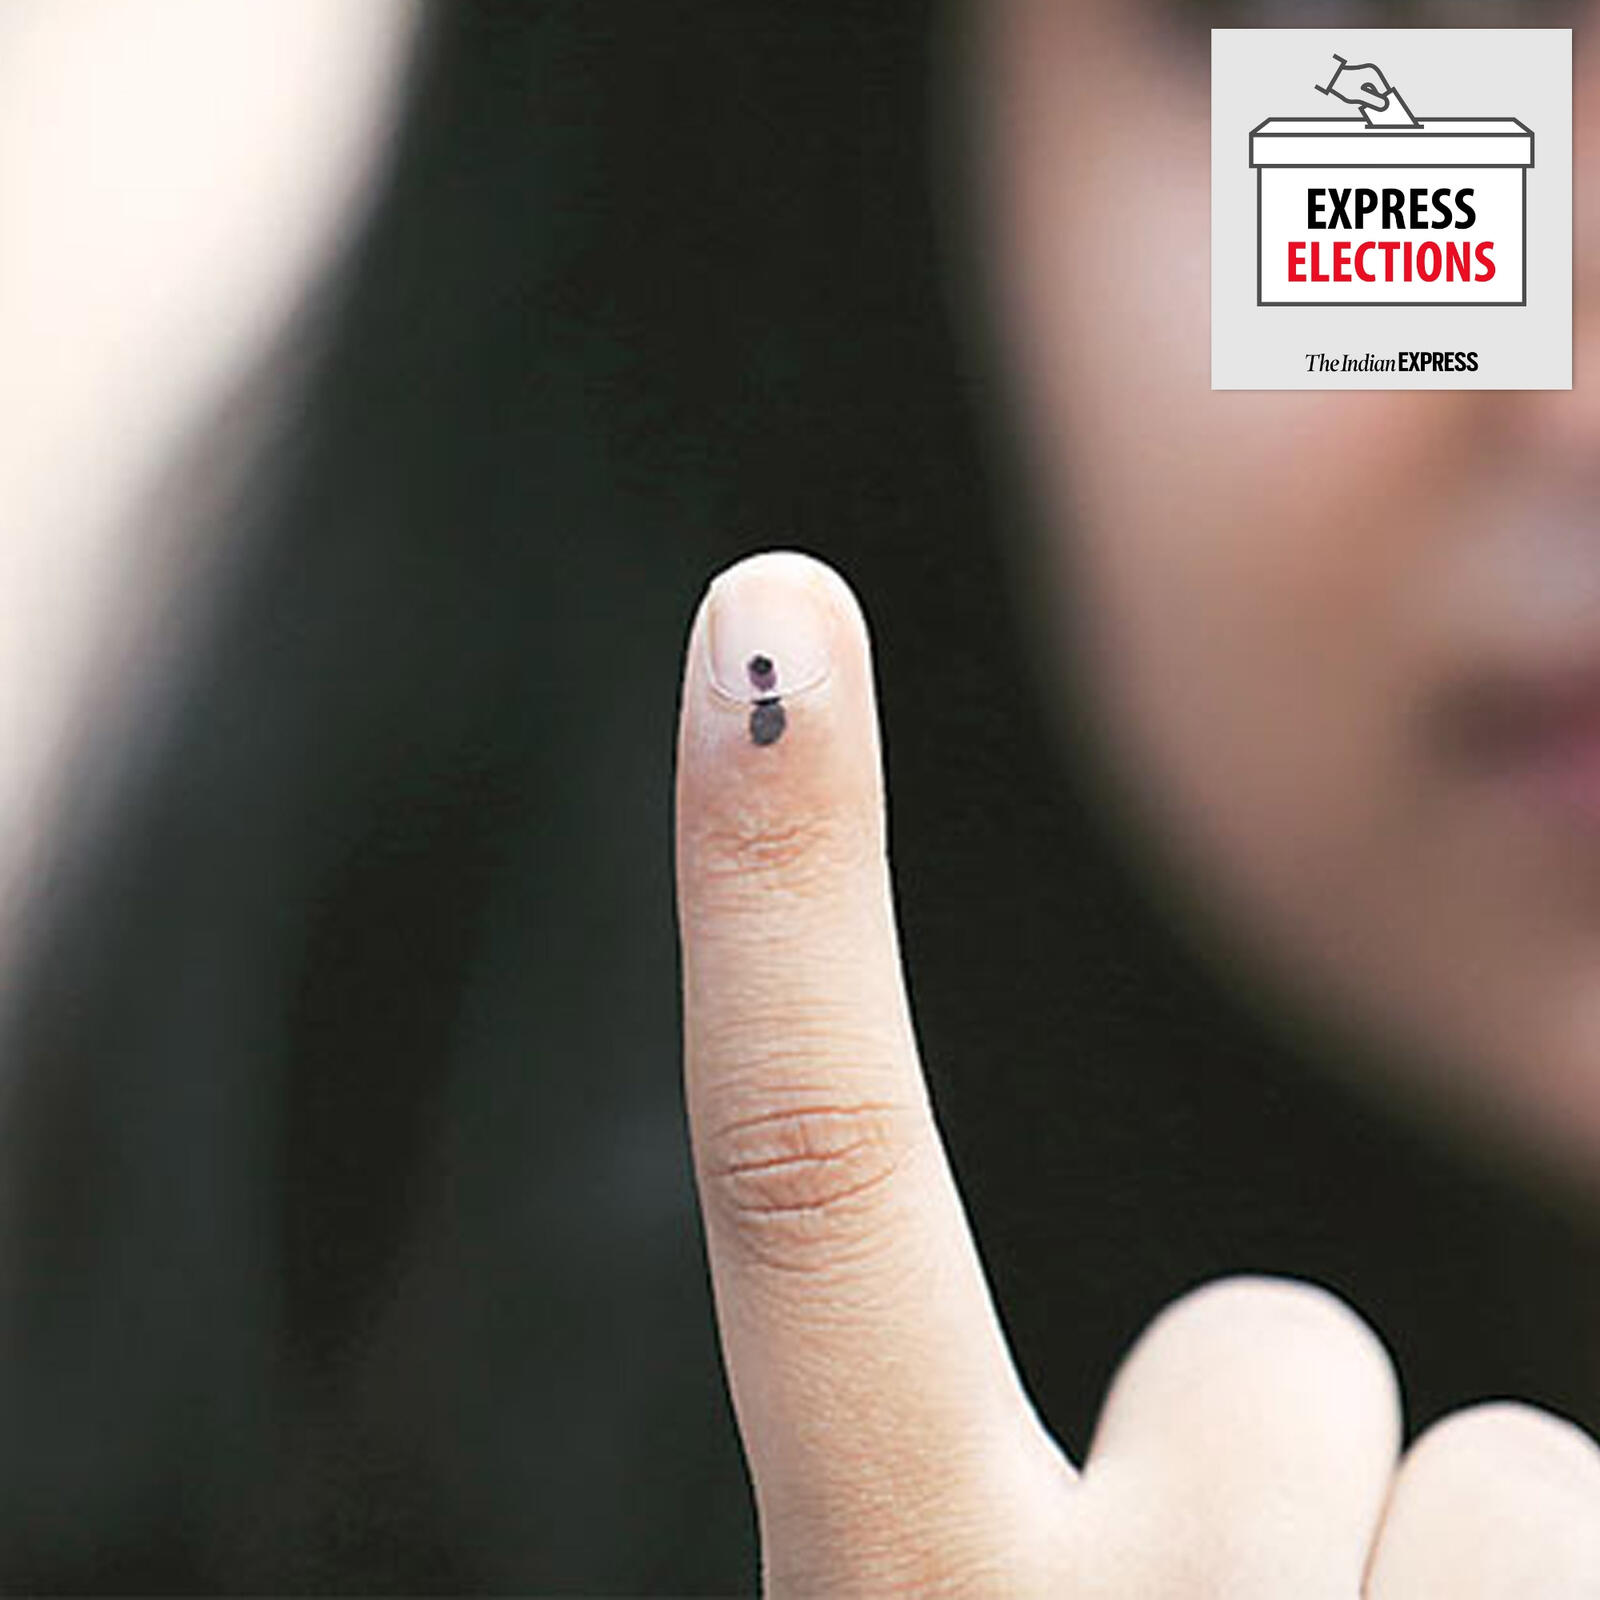 4: The Youth Vote: Why isn't the youth voting?